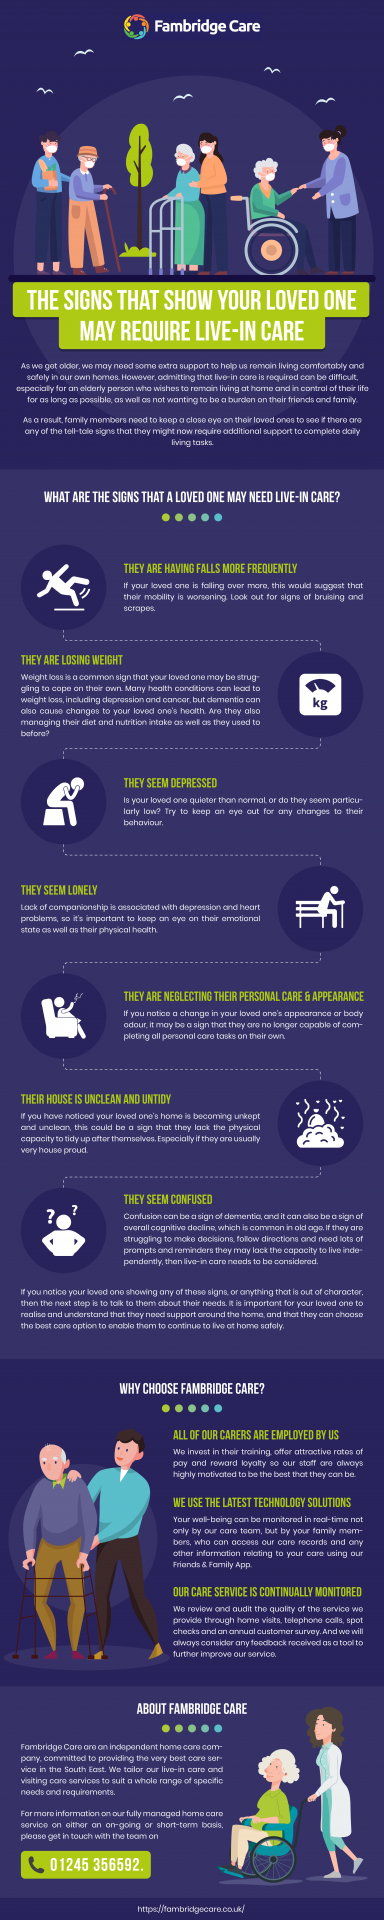 The signs that show your loved one may require live-in care